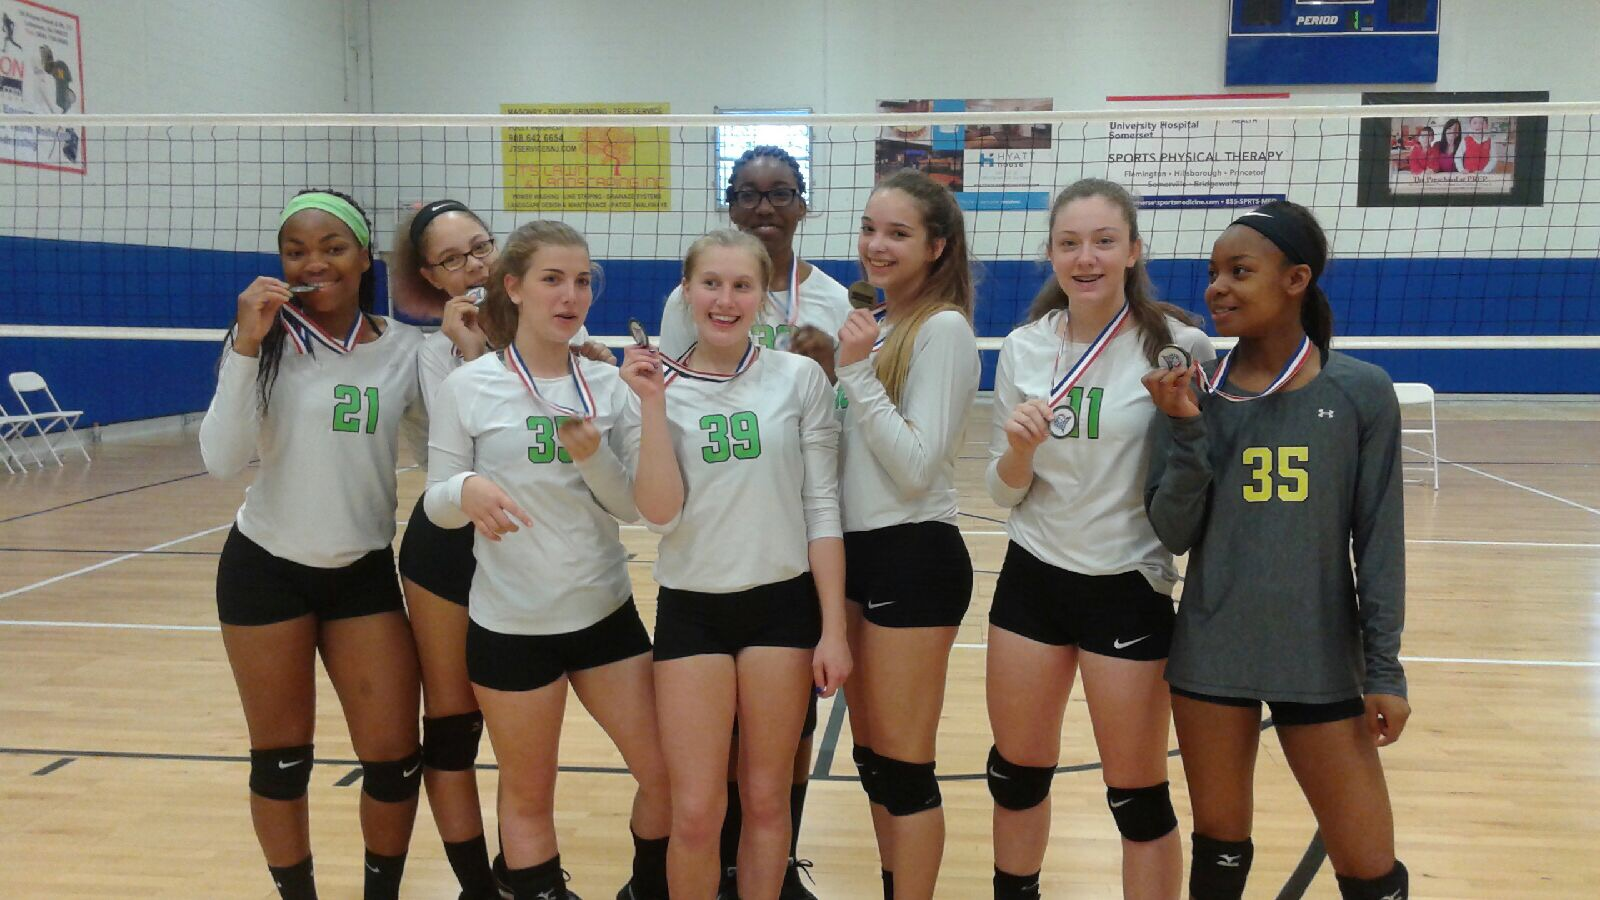 Cherry Hill Volleyball Club Page 4